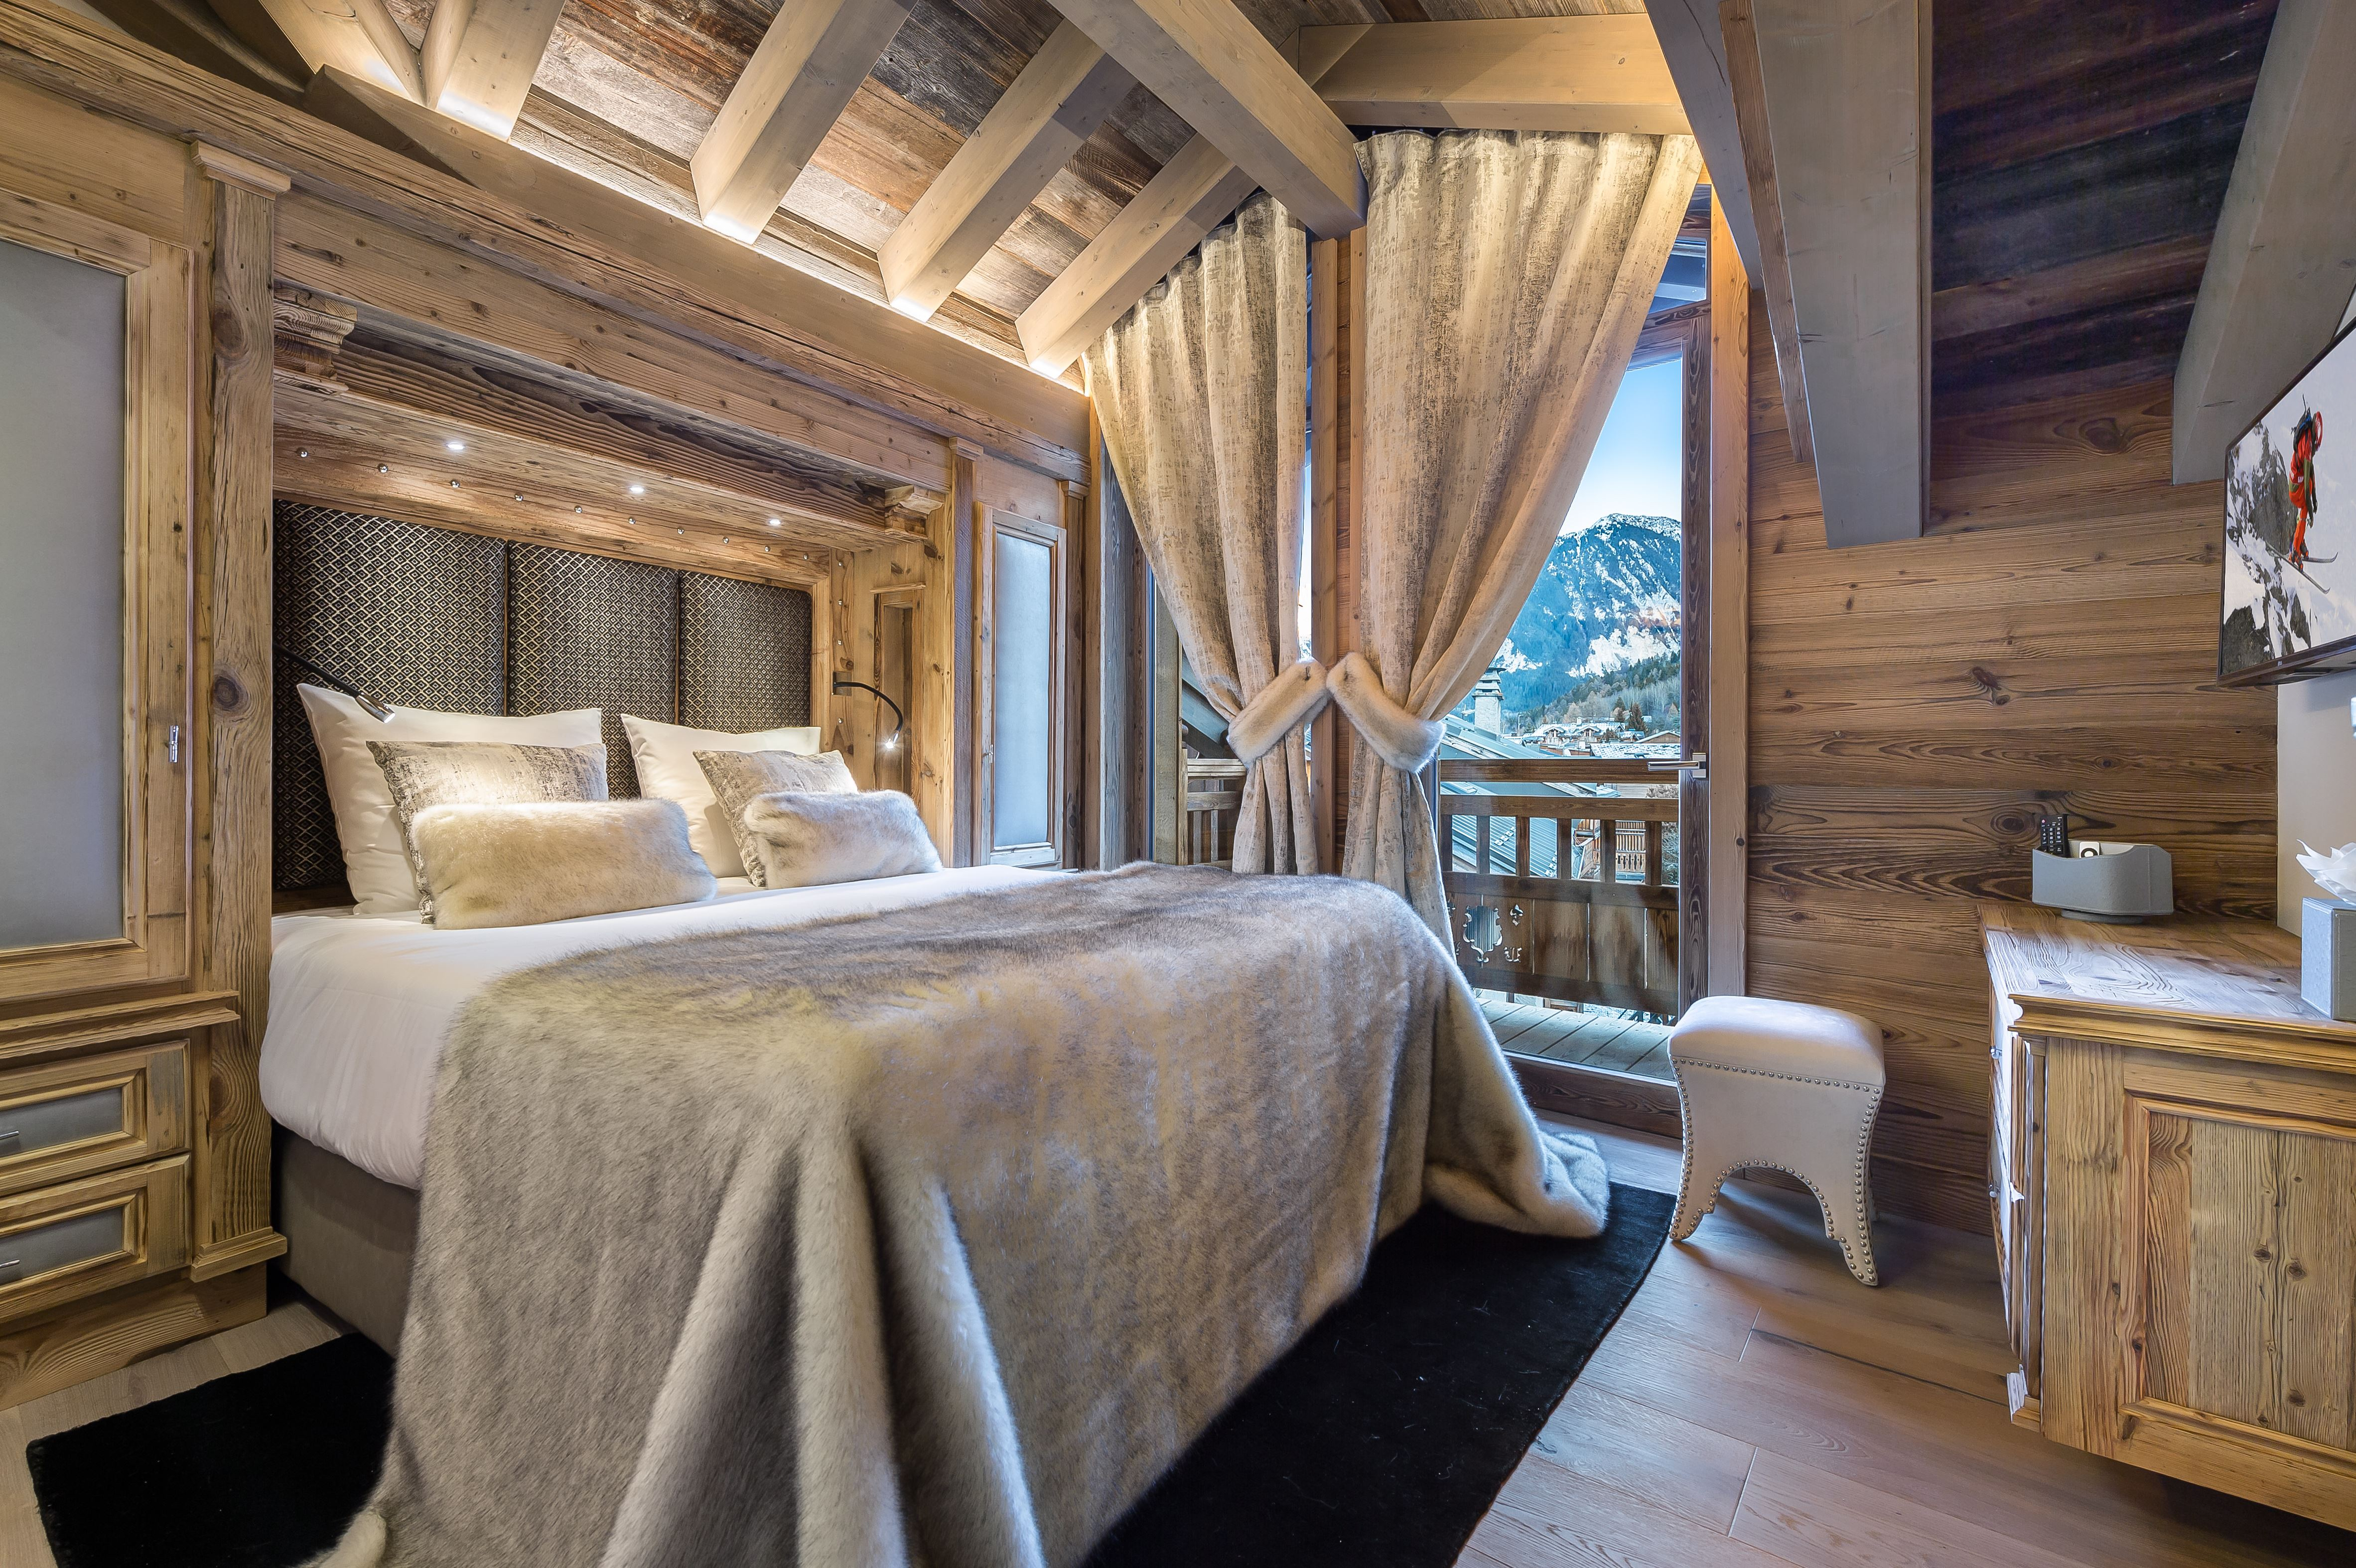 6 rooms 10 people / CHALET WHITE (mountain of exception)